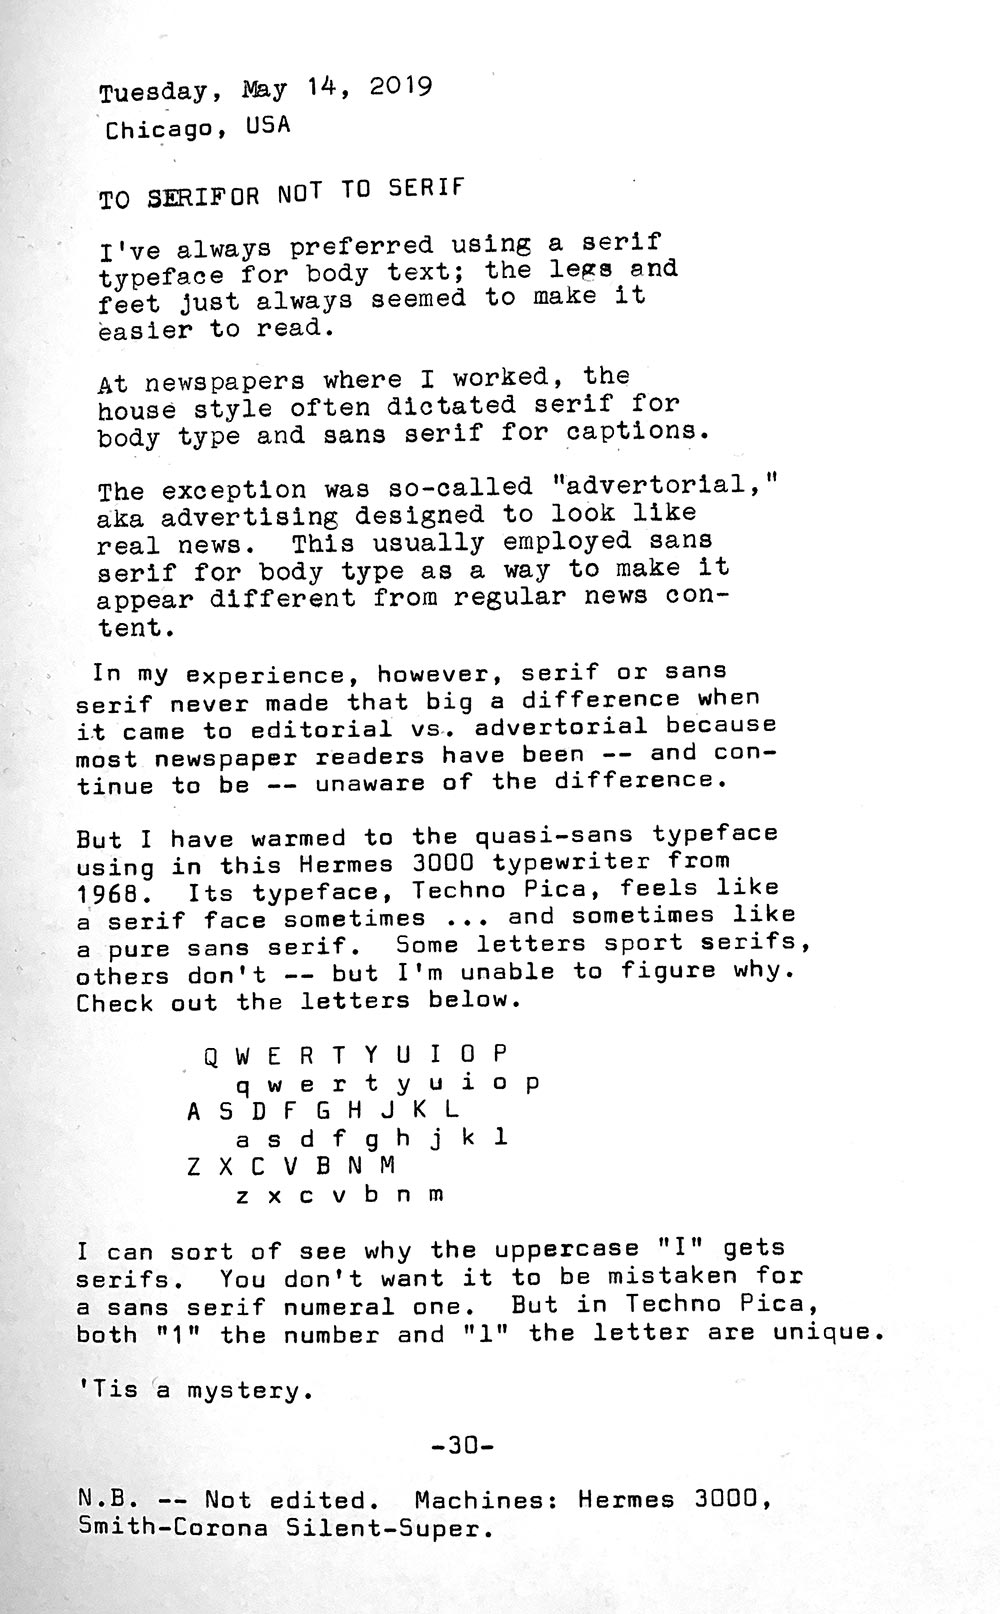 Photo is of a typewritten page with the following text, which varies between serif and sans serif typefaces. Tuesday, May 14, 2019. Chicago, USA. To serif or not to serif. I've always preferred using a serif typeface for body text; the legs and feet just always seemed to make it easier to read. At newspapers where I worked, the house style often dictated serif for body type and sans serif for captions. The exception was so-called advertorial, aka advertising designed to look like real news. This usually employed sans serif for body type as a way to make it appear different from regular news content. In my experience, however, serif or sans serif never made that big a difference when it came to editorial vs. advertorial because most newspaper readers have been — and continue to be — unaware of the difference. But I have warmed to the quasi-sans typeface used in this Hermes 3000 typewriter from 1968. Its typeface, Techno Pica, feels like a serif face sometimes and sometimes like a pure sans serif. Only a few letters sport serifs, others don't — but I 'm unable to figure why. The photo shows an example of Techno Pica typeface, which is mostly san serif except for a handful of exceptions. I can sort of see why the serifs. You don't want a lowrcase ell to be mistaken for a sans serif numeral one. So in Techno Pica, both are unique. Tis a mystery.